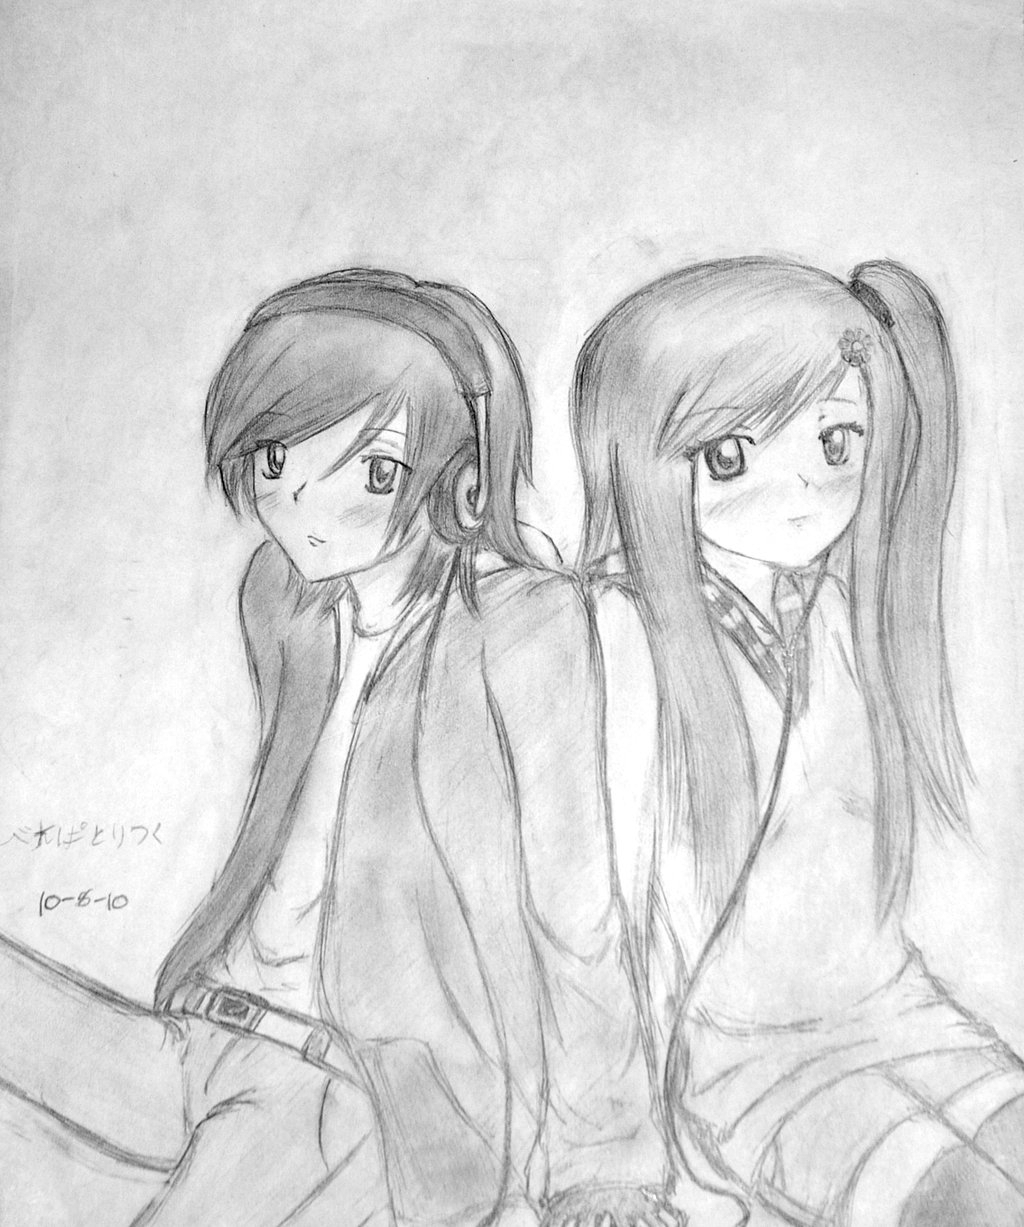 1024x1227 Couple Holding Hand Pencil Sketch Cute Anime Couples Holding Hands